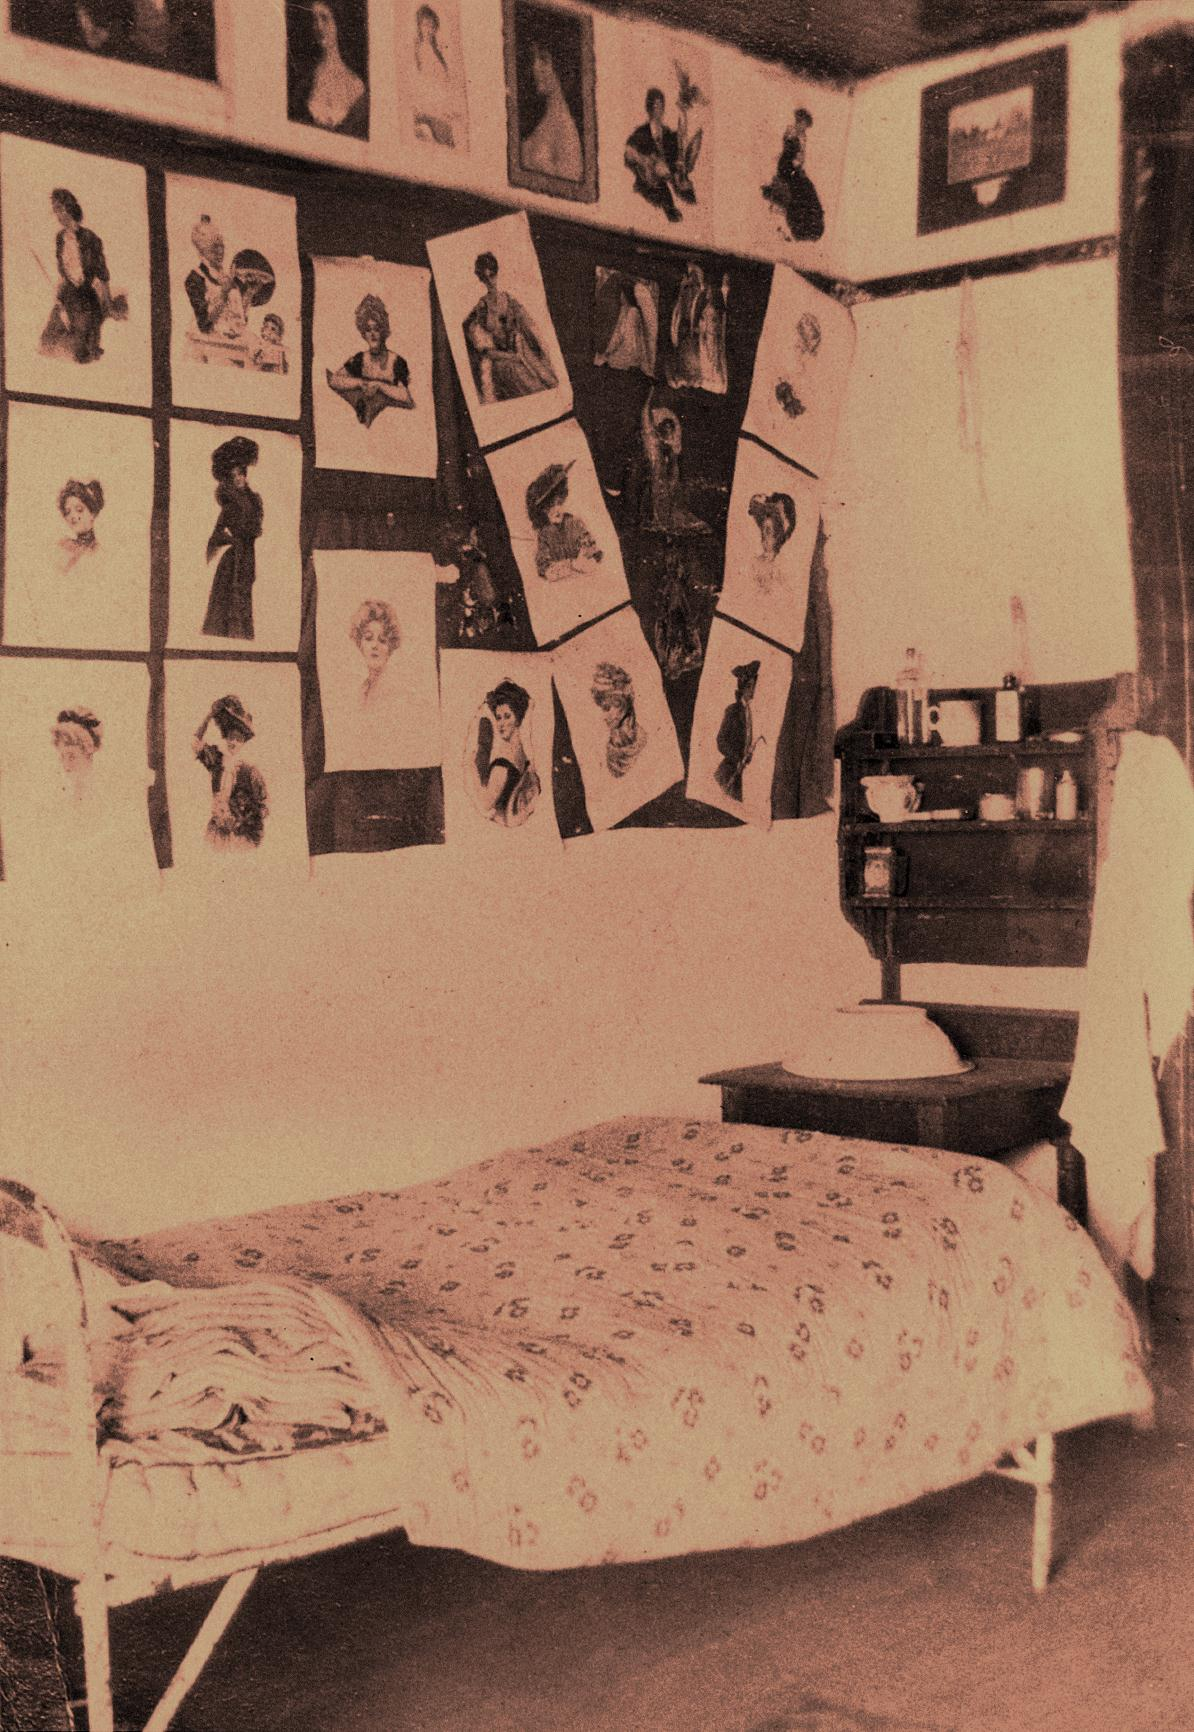 Then as now, students personalized their rooms with decorations. With no members of the opposite sex to be seen on campus, many male cadets adorned their walls with the female formor at least as much of the female form as was allowed by Victorian-era strictures.